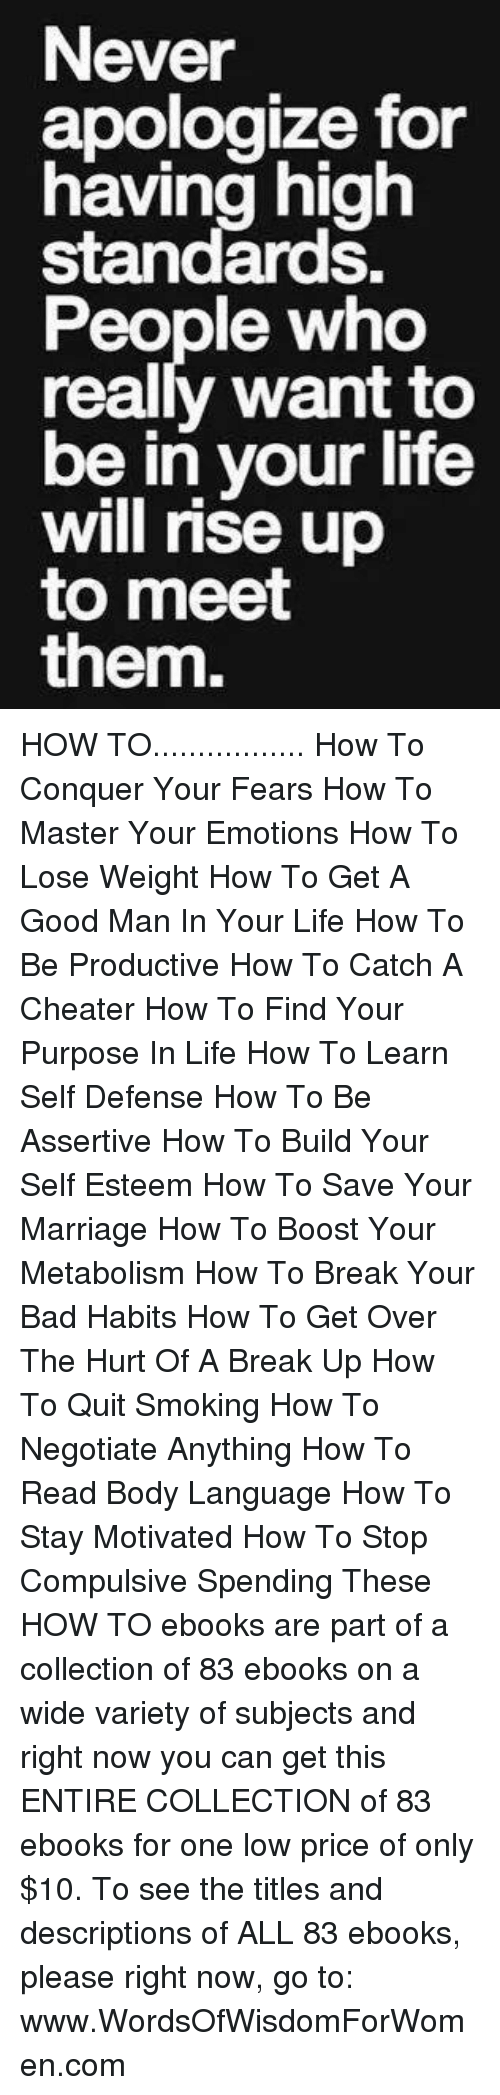 how to lose weight: Never  apologize for  having high  standards.  People who  really want to  be in your life  will rise up  to meet  them. HOW TO................. How To Conquer Your Fears How To Master Your Emotions How To Lose Weight How To Get A Good Man In Your Life  How To Be Productive  How To Catch A Cheater  How To Find Your Purpose In Life  How To Learn Self Defense How To Be Assertive   How To Build Your Self Esteem   How To Save Your Marriage  How To Boost Your Metabolism  How To Break Your Bad Habits   How To Get Over The Hurt Of A Break Up  How To Quit Smoking  How To Negotiate Anything  How To Read Body Language   How To Stay Motivated  How To Stop Compulsive Spending    These HOW TO ebooks are part of a collection of 83 ebooks on a wide variety of subjects and right now you can get this ENTIRE COLLECTION of 83 ebooks for one low price of only $10. To see the titles and descriptions of ALL 83 ebooks, please right now, go to: www.WordsOfWisdomForWomen.com